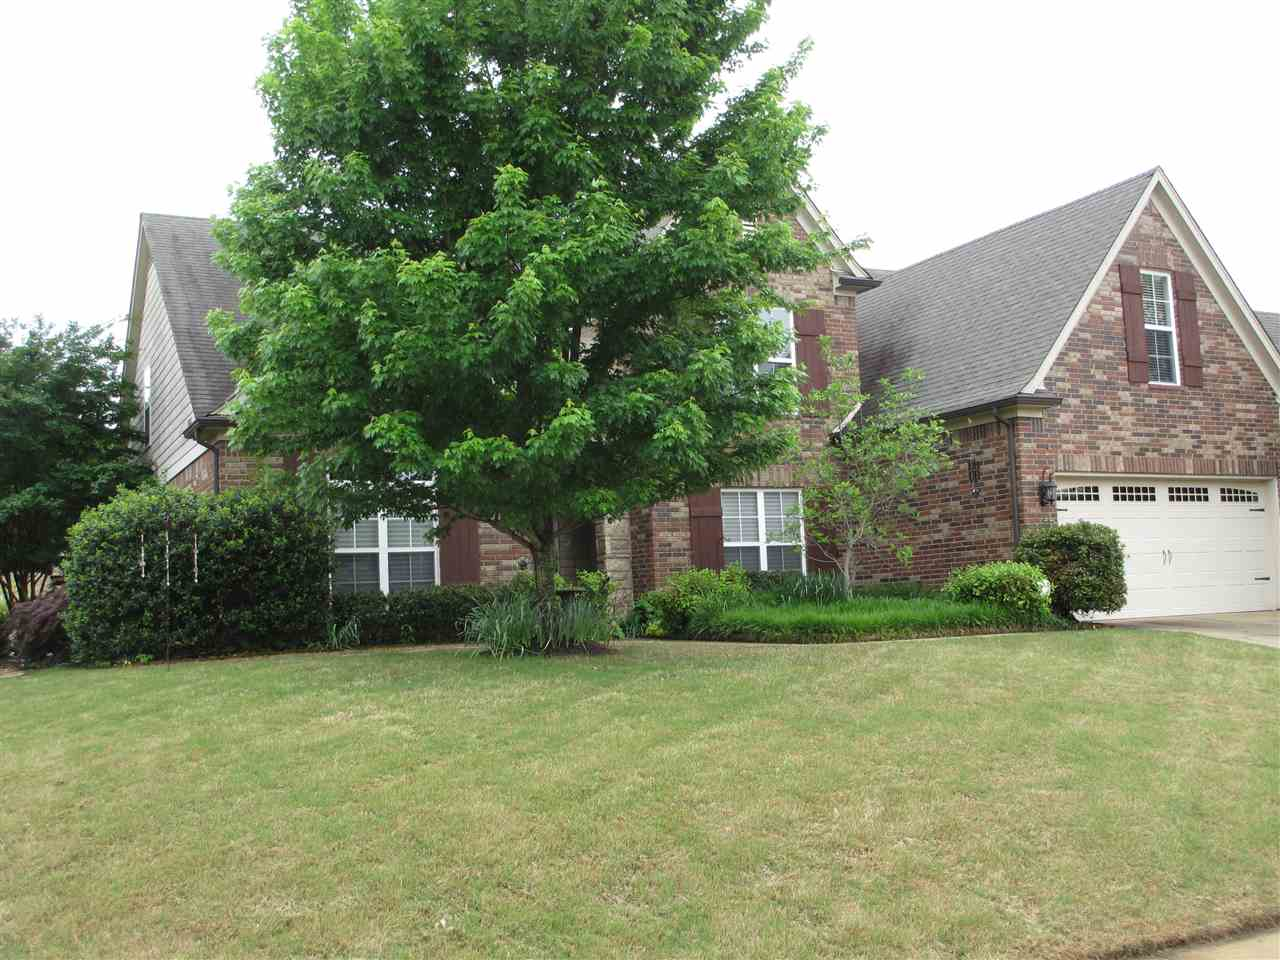 Property for sale at 8469 Spotted Fawn Dr, Bartlett,  TN 38133